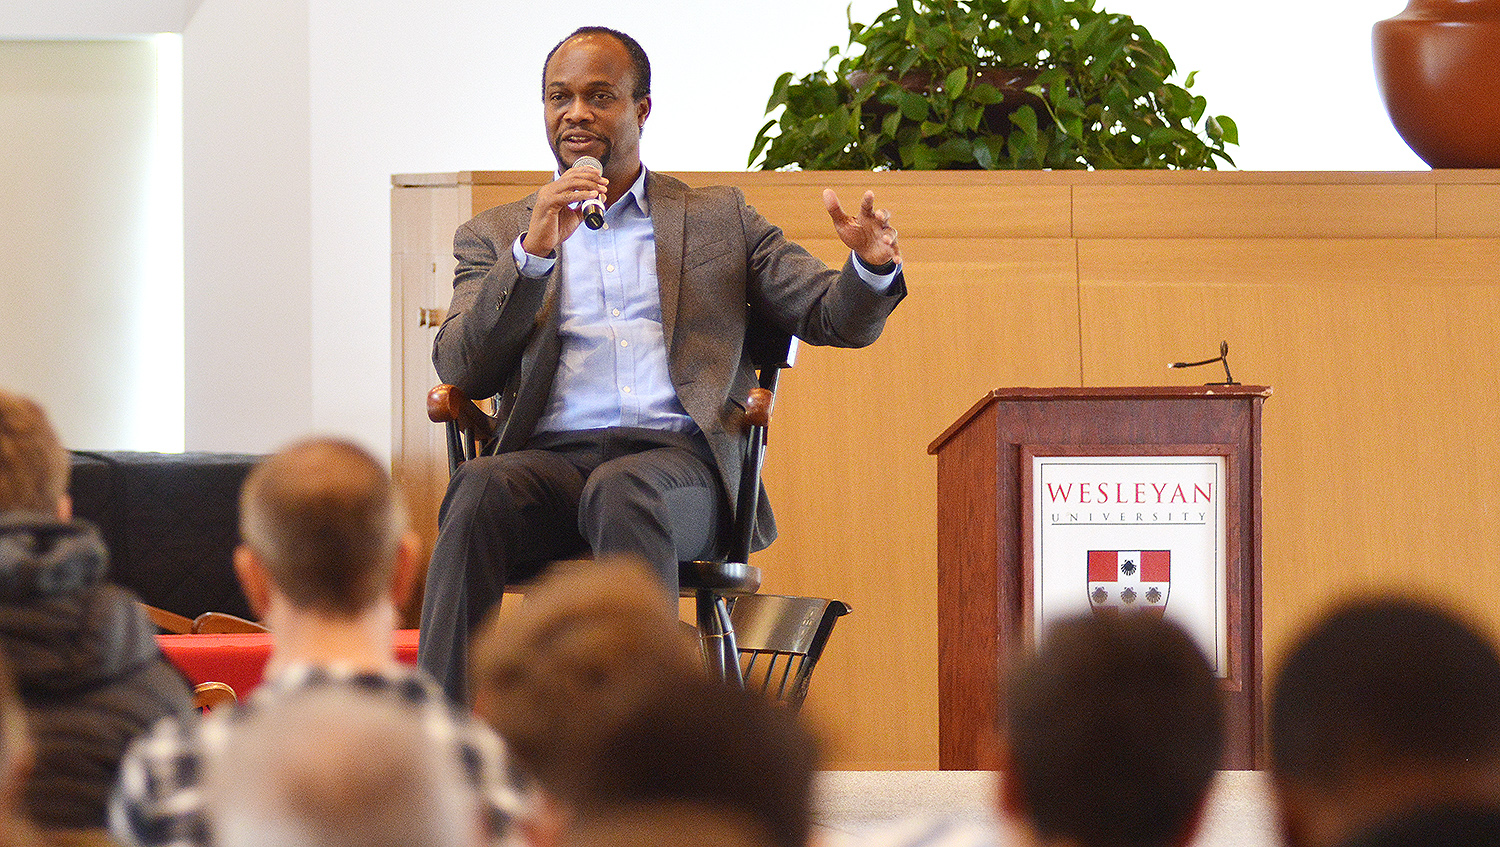 English major Rob King '84, senior vice president of original content newsgathering and digital Media at ESPN, delivered the alumni keynote speech during WesFest on April 11. King oversees ESPN's entire portfolio of newsgathering and storytelling assets across television, digital and print. He also oversees the Stats and Information Group and leads ESPN's Editorial Board that sets the tone and direction of ESPN's overall content coverage and standards.